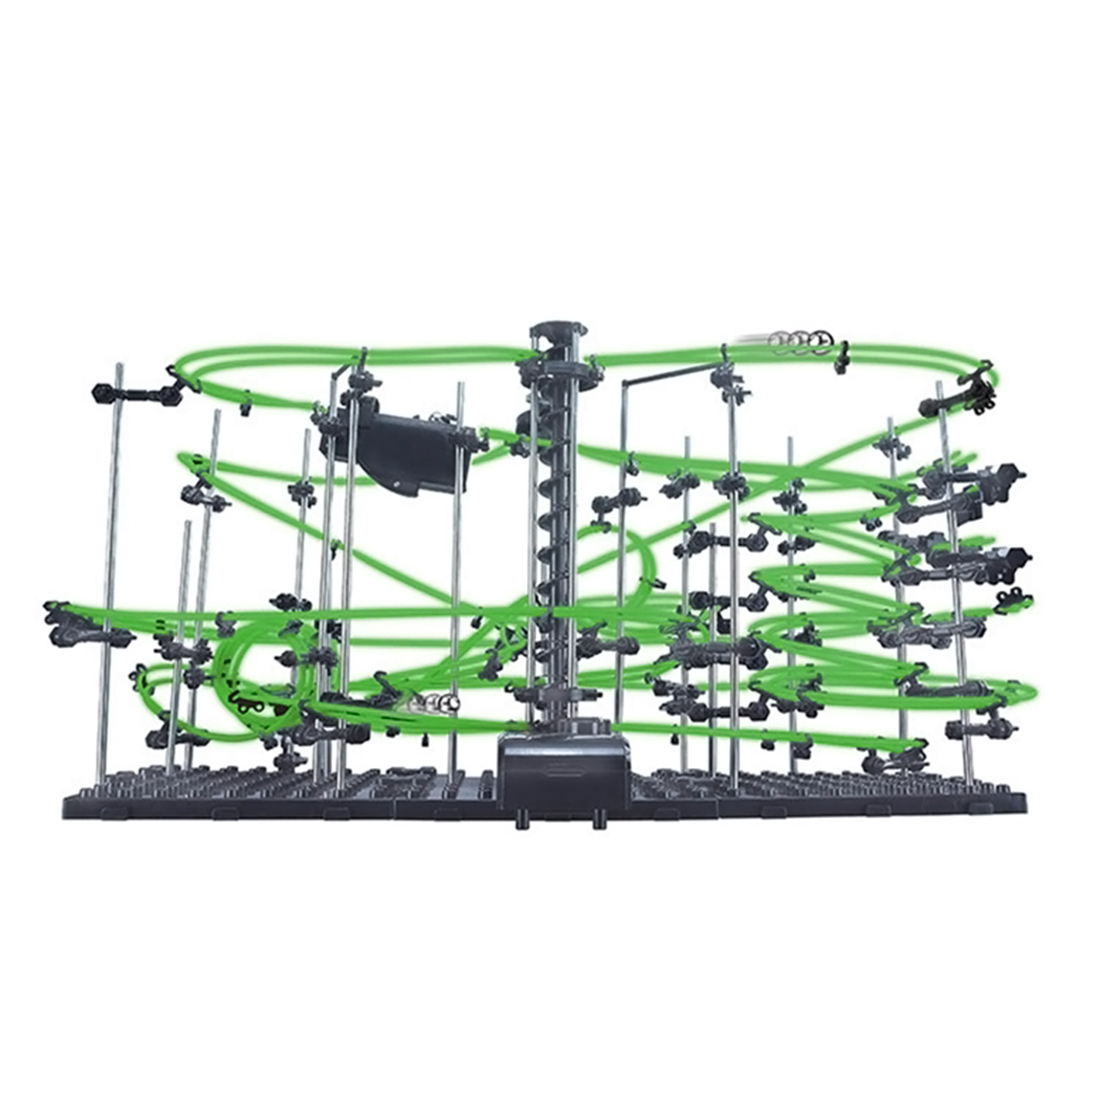 DIY Educational Toys Spacerail Level 4 Glow In The Dark Marble Roller Coaster with Steel Balls Toys for Kid 26000mm 231-4 3000cm rail level 5 marble run night luminous glow in the dark roller coaster model building gifts maze rolling ball sculpture